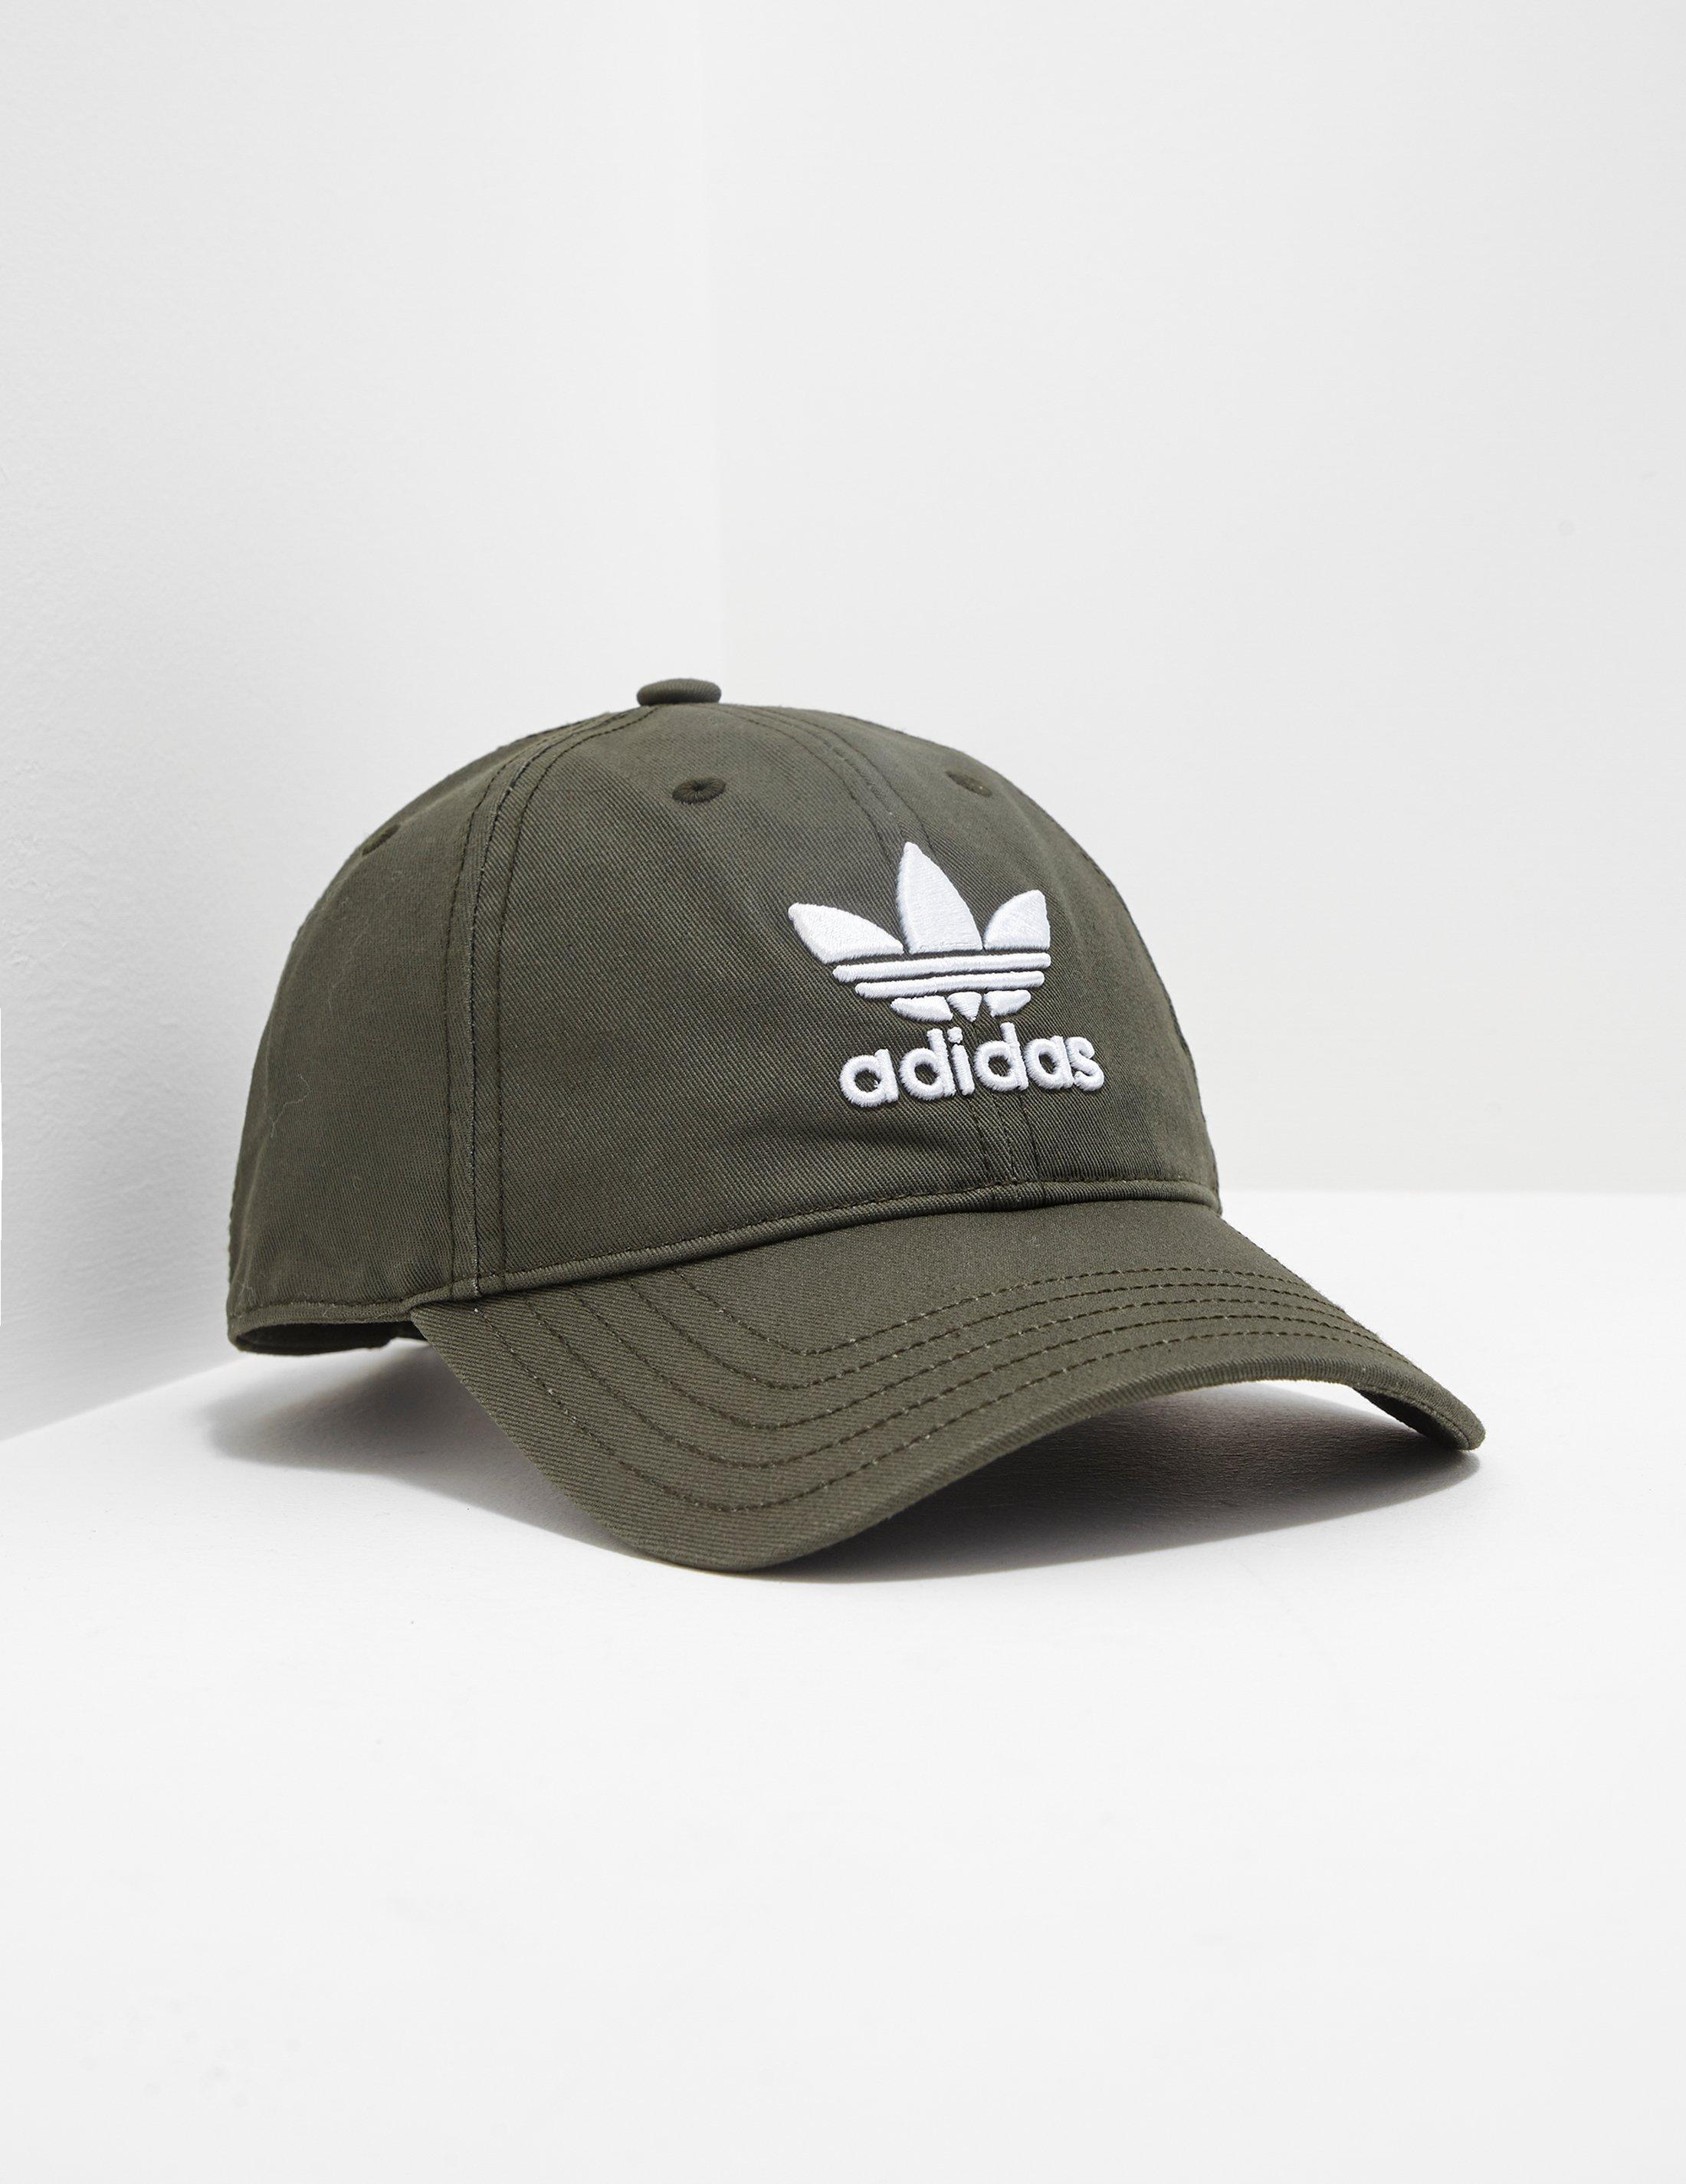 d3db92ef8f9 adidas Originals Mens Trefoil Classic Cap Olive in Green for Men - Lyst